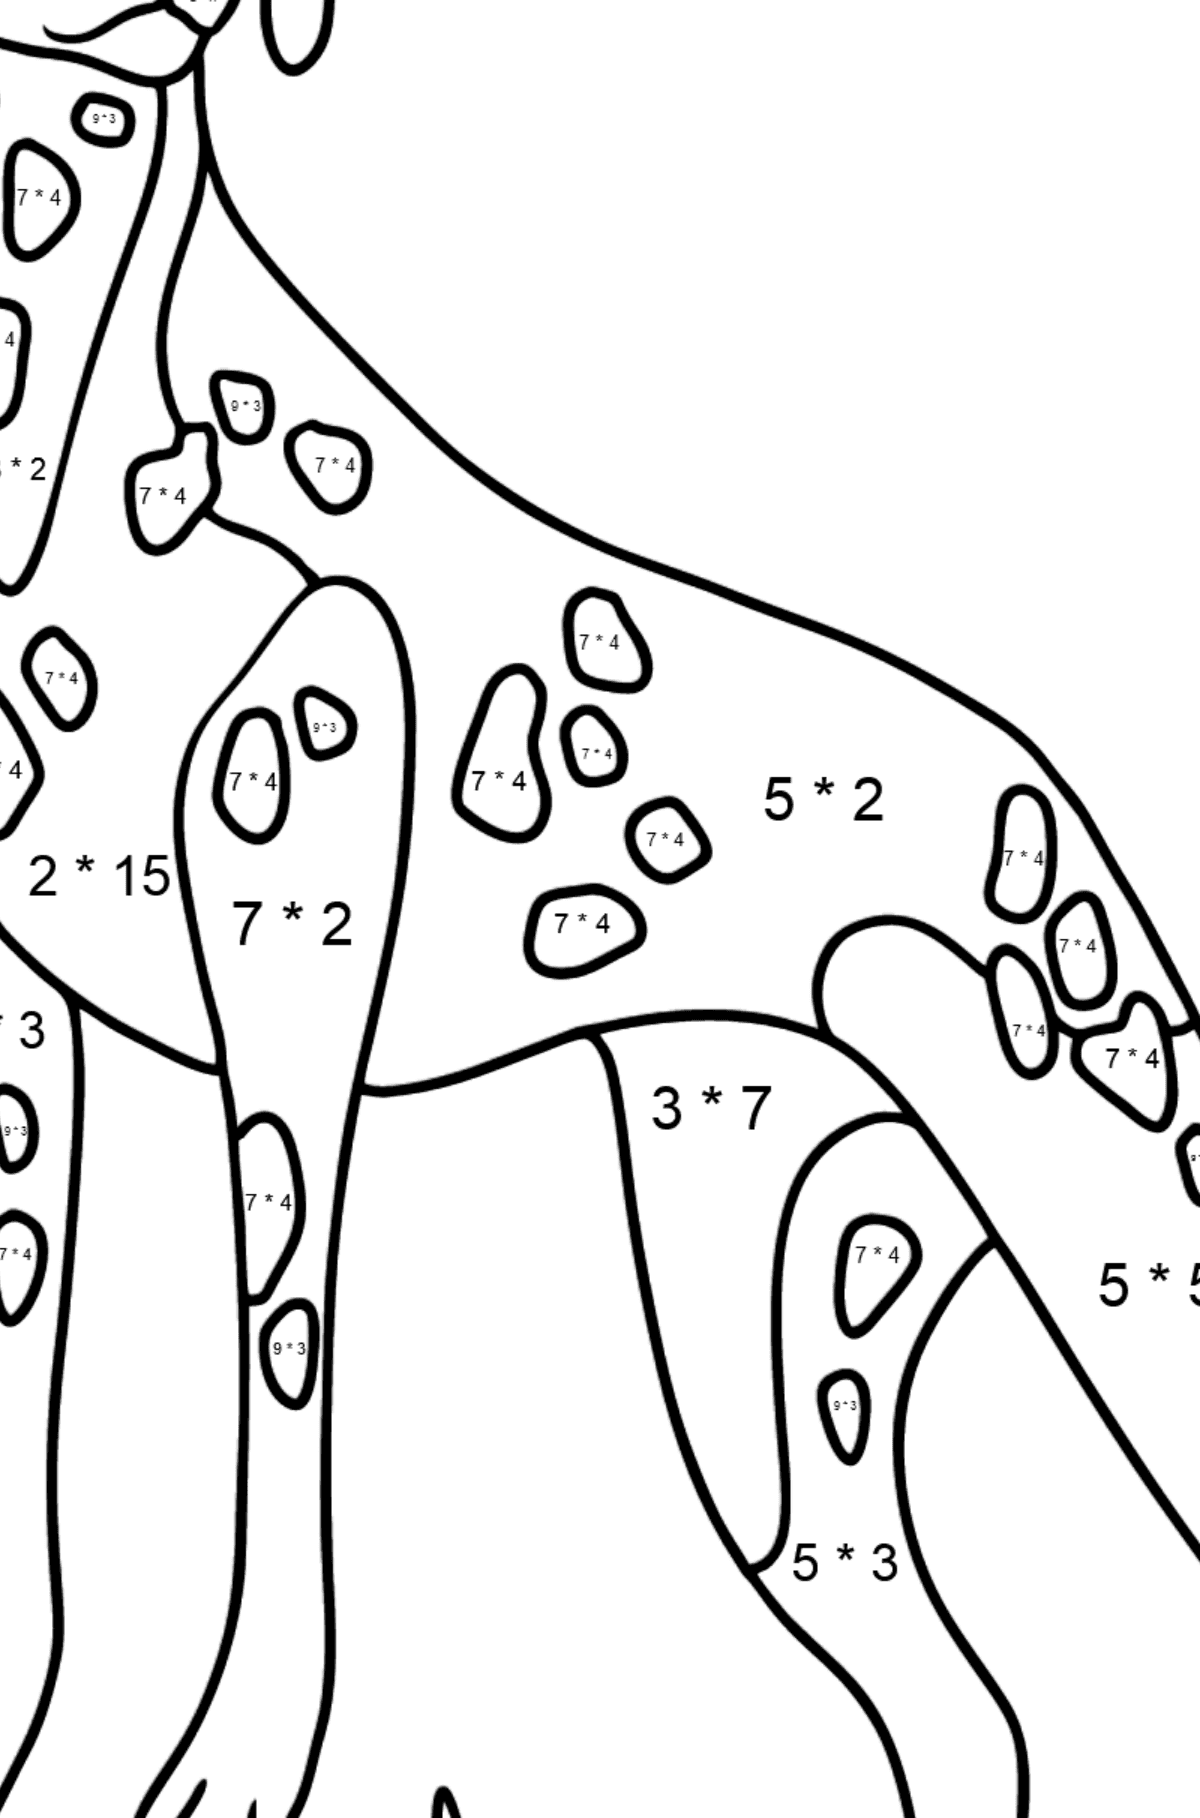 Dalmatian coloring page - Math Coloring - Multiplication for Kids